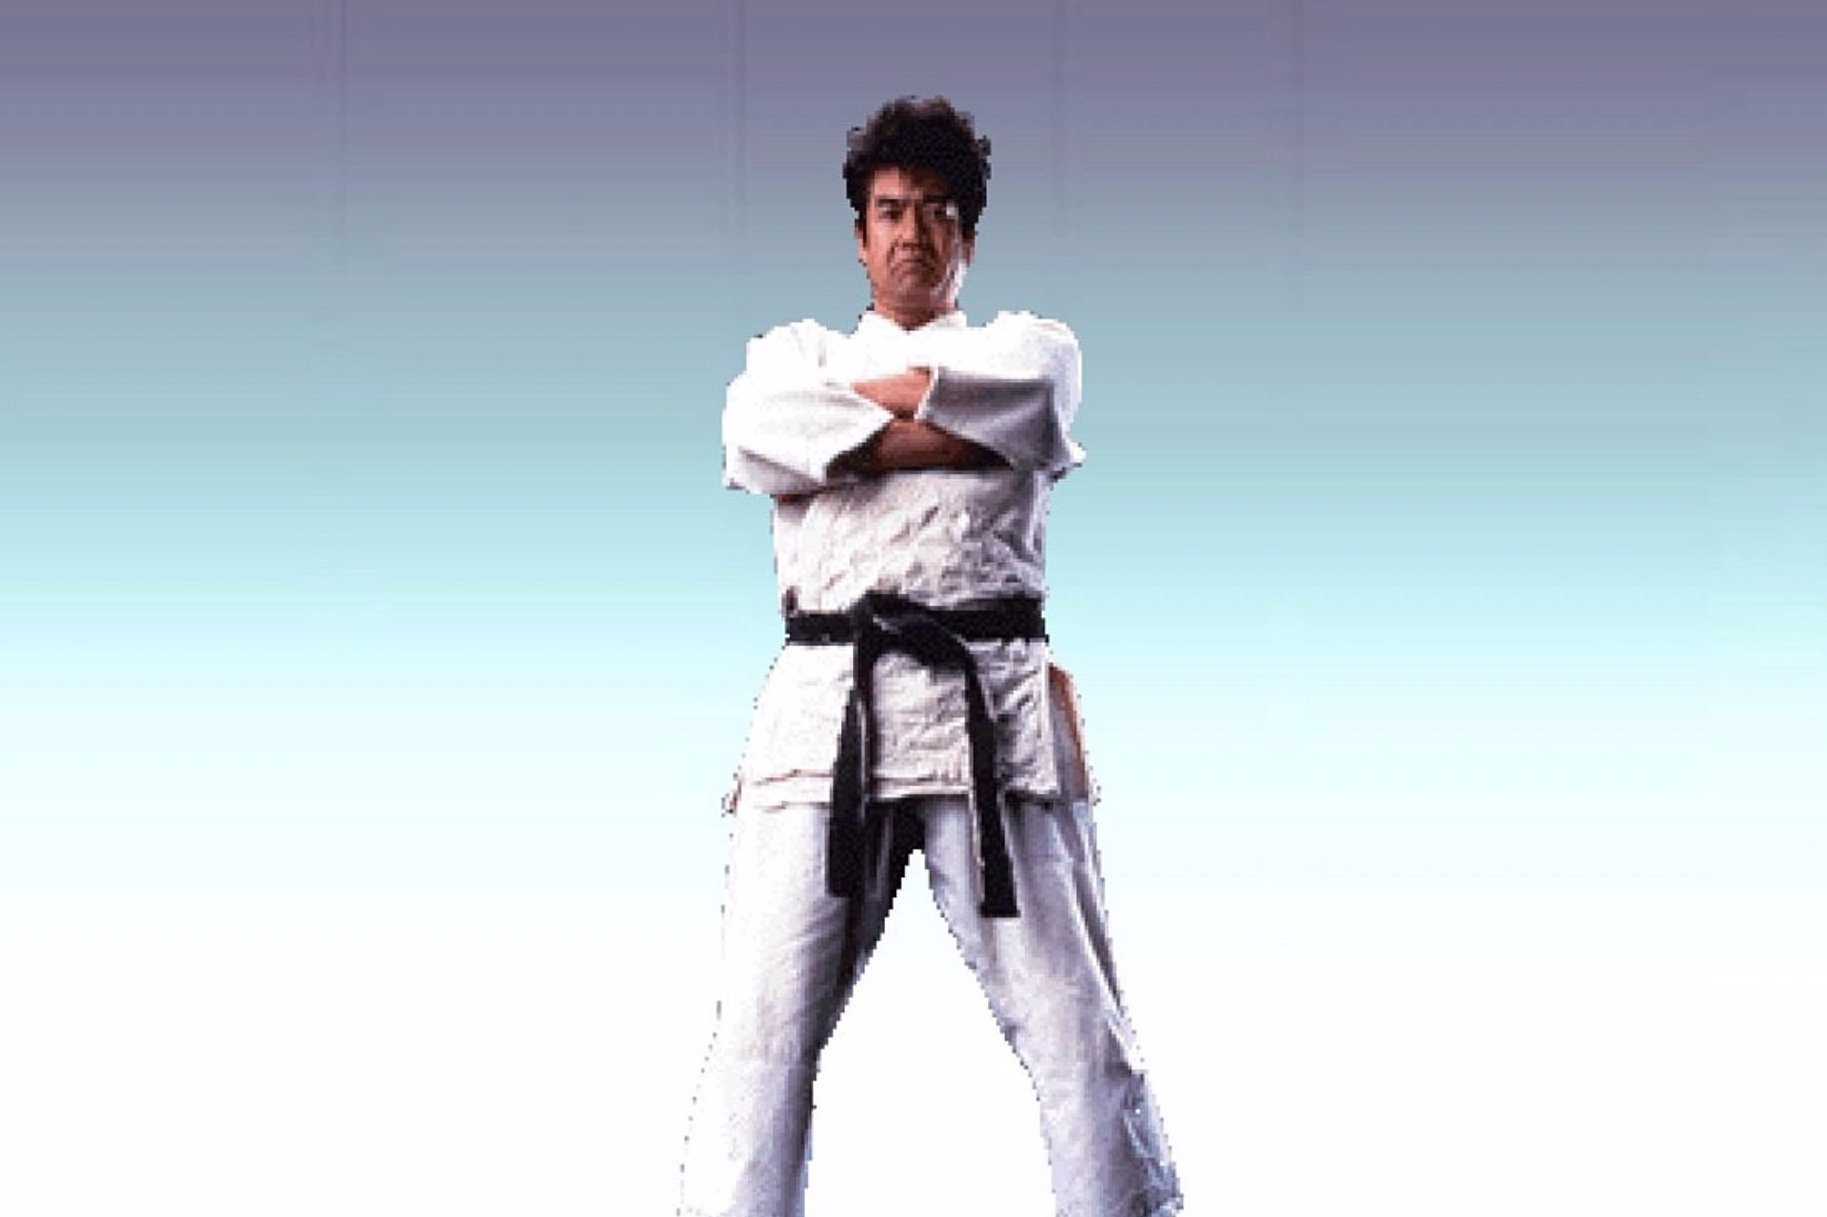 Modojo | Segata Sanshiro Joins The Project X Zone 2 Roster